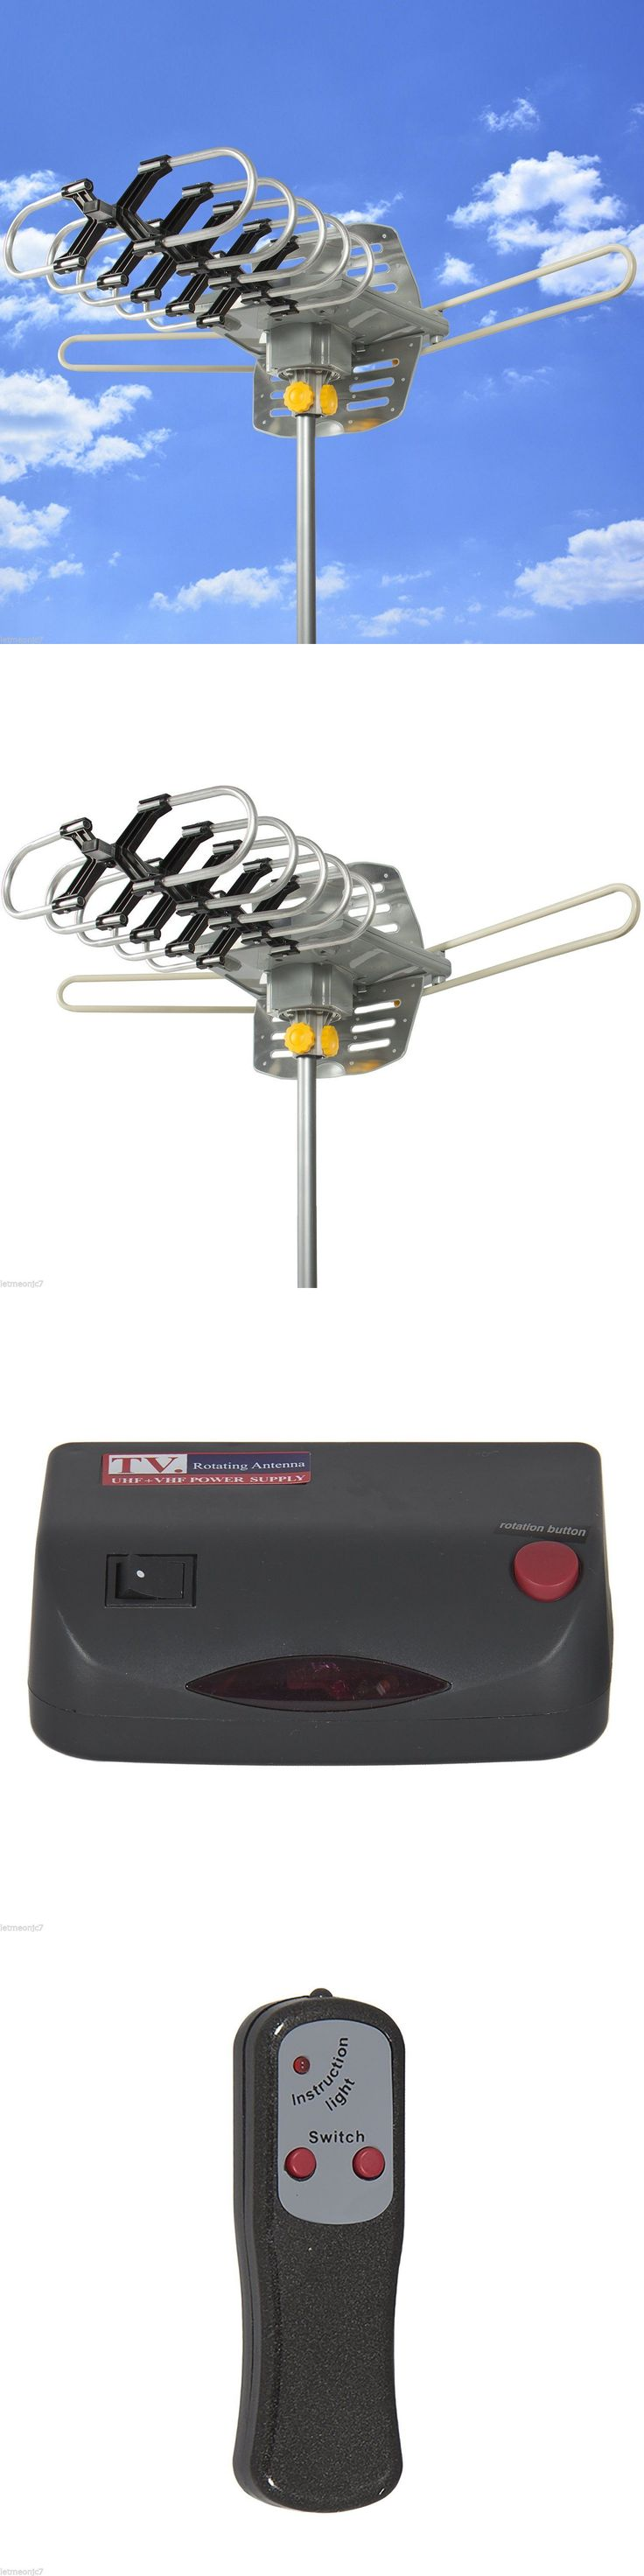 Antennas and Dishes: Hdtv Outdoor Antenna Remote Control Rv Boat Home Hd Tv Ultra Power Amplified Uhf -> BUY IT NOW ONLY: $47.85 on eBay!